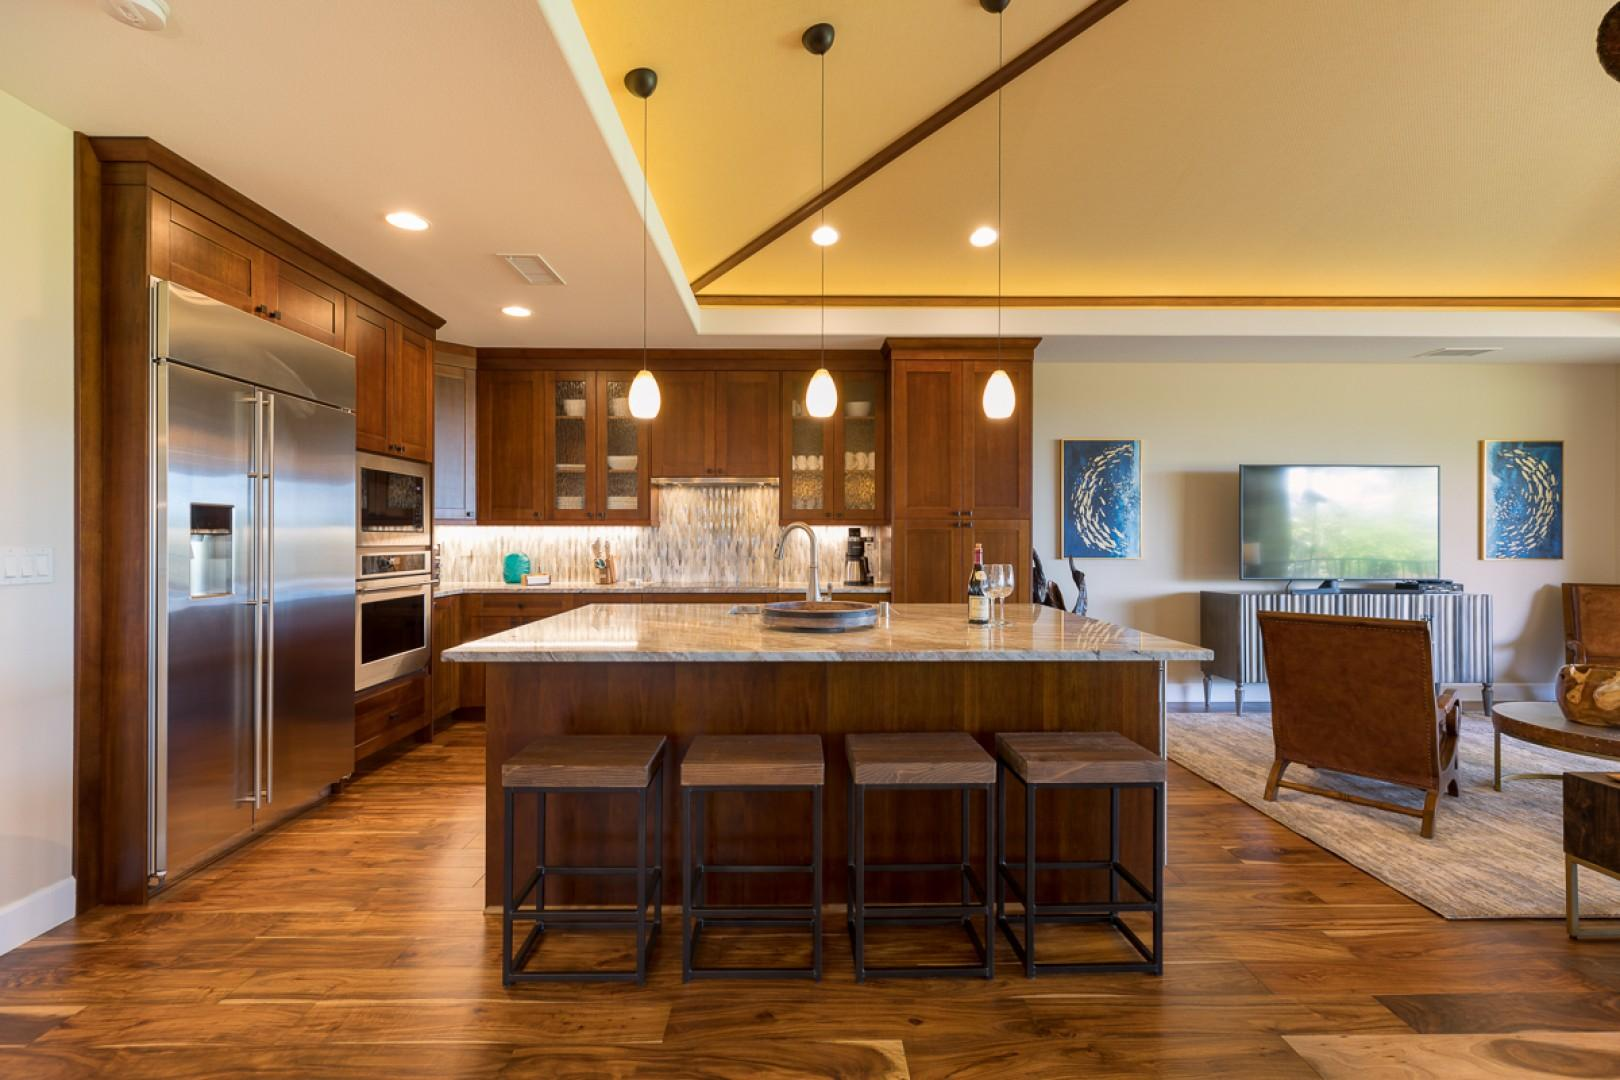 Kitchen and island for entertaining